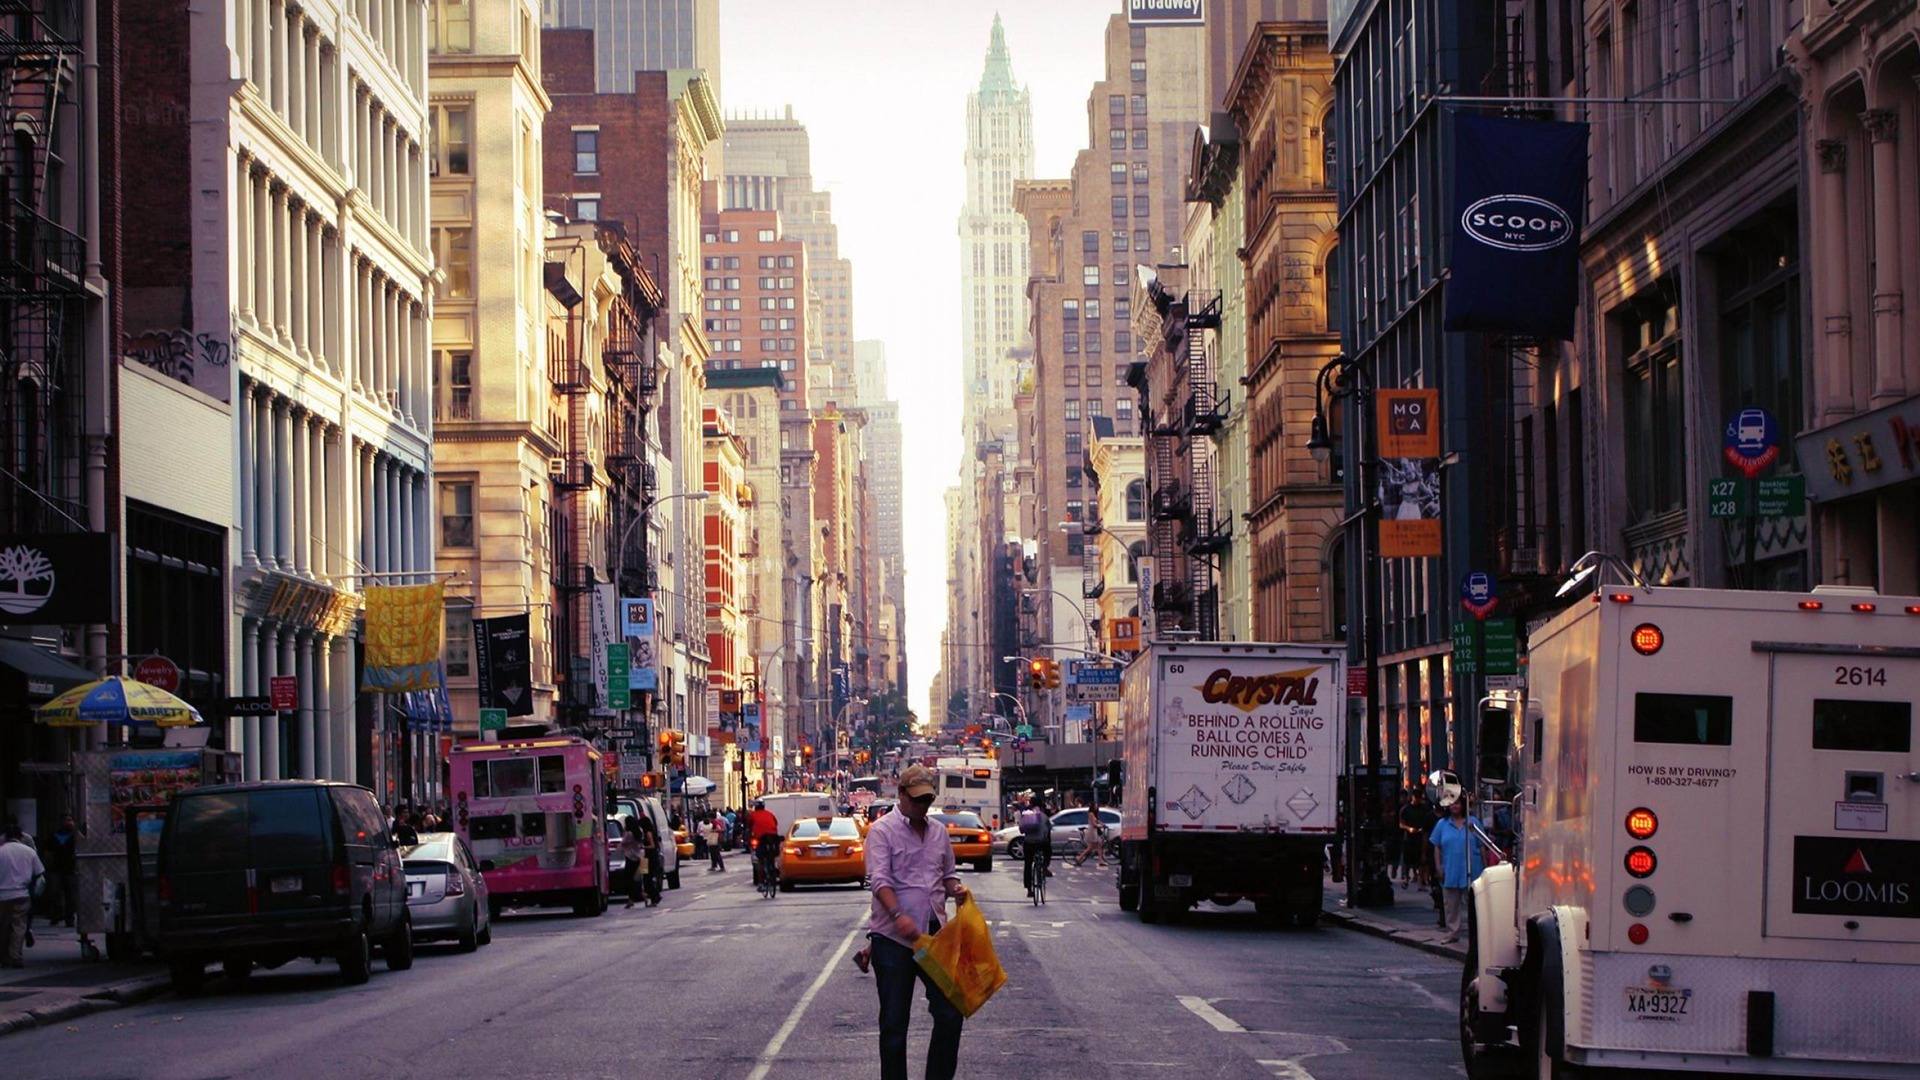 City New York Street Photography Wallpape